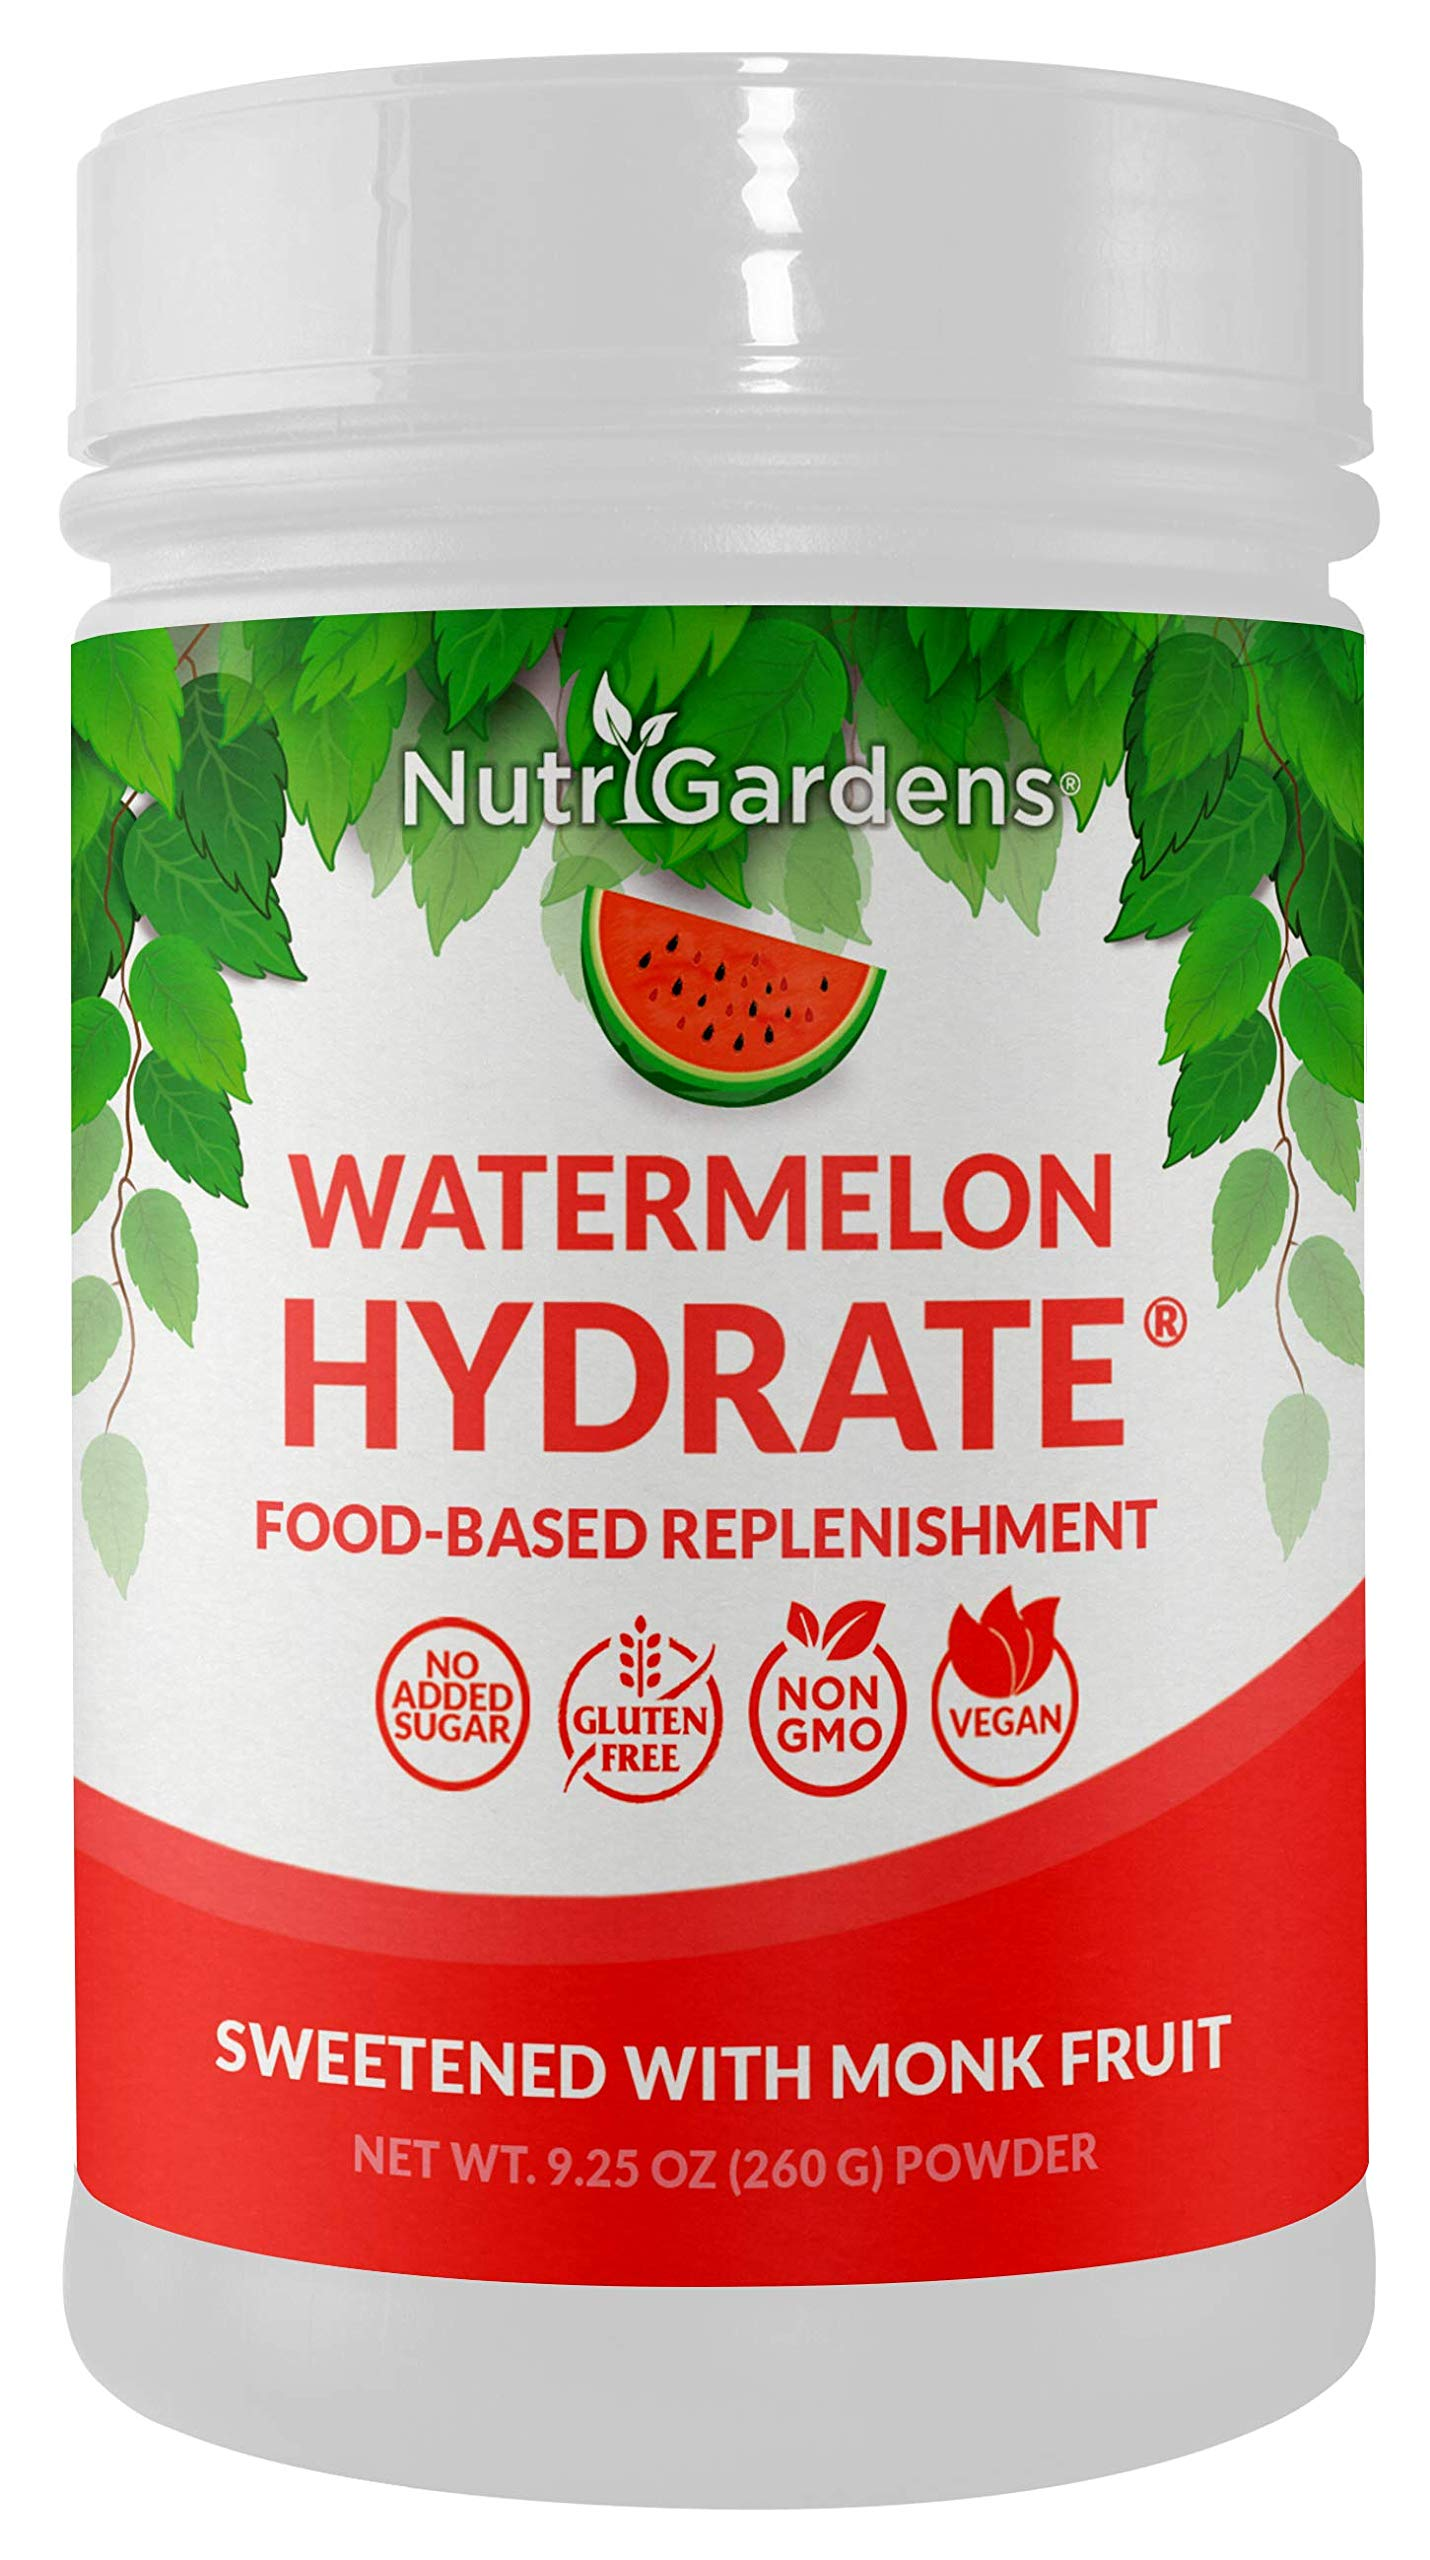 Amazon.com: Watermelon Hydrate® – Electrolyte Hydration Powder. Replace Lost Electrolytes from Sweat. 100% Plant-Based Recovery Drink with Trace Minerals.